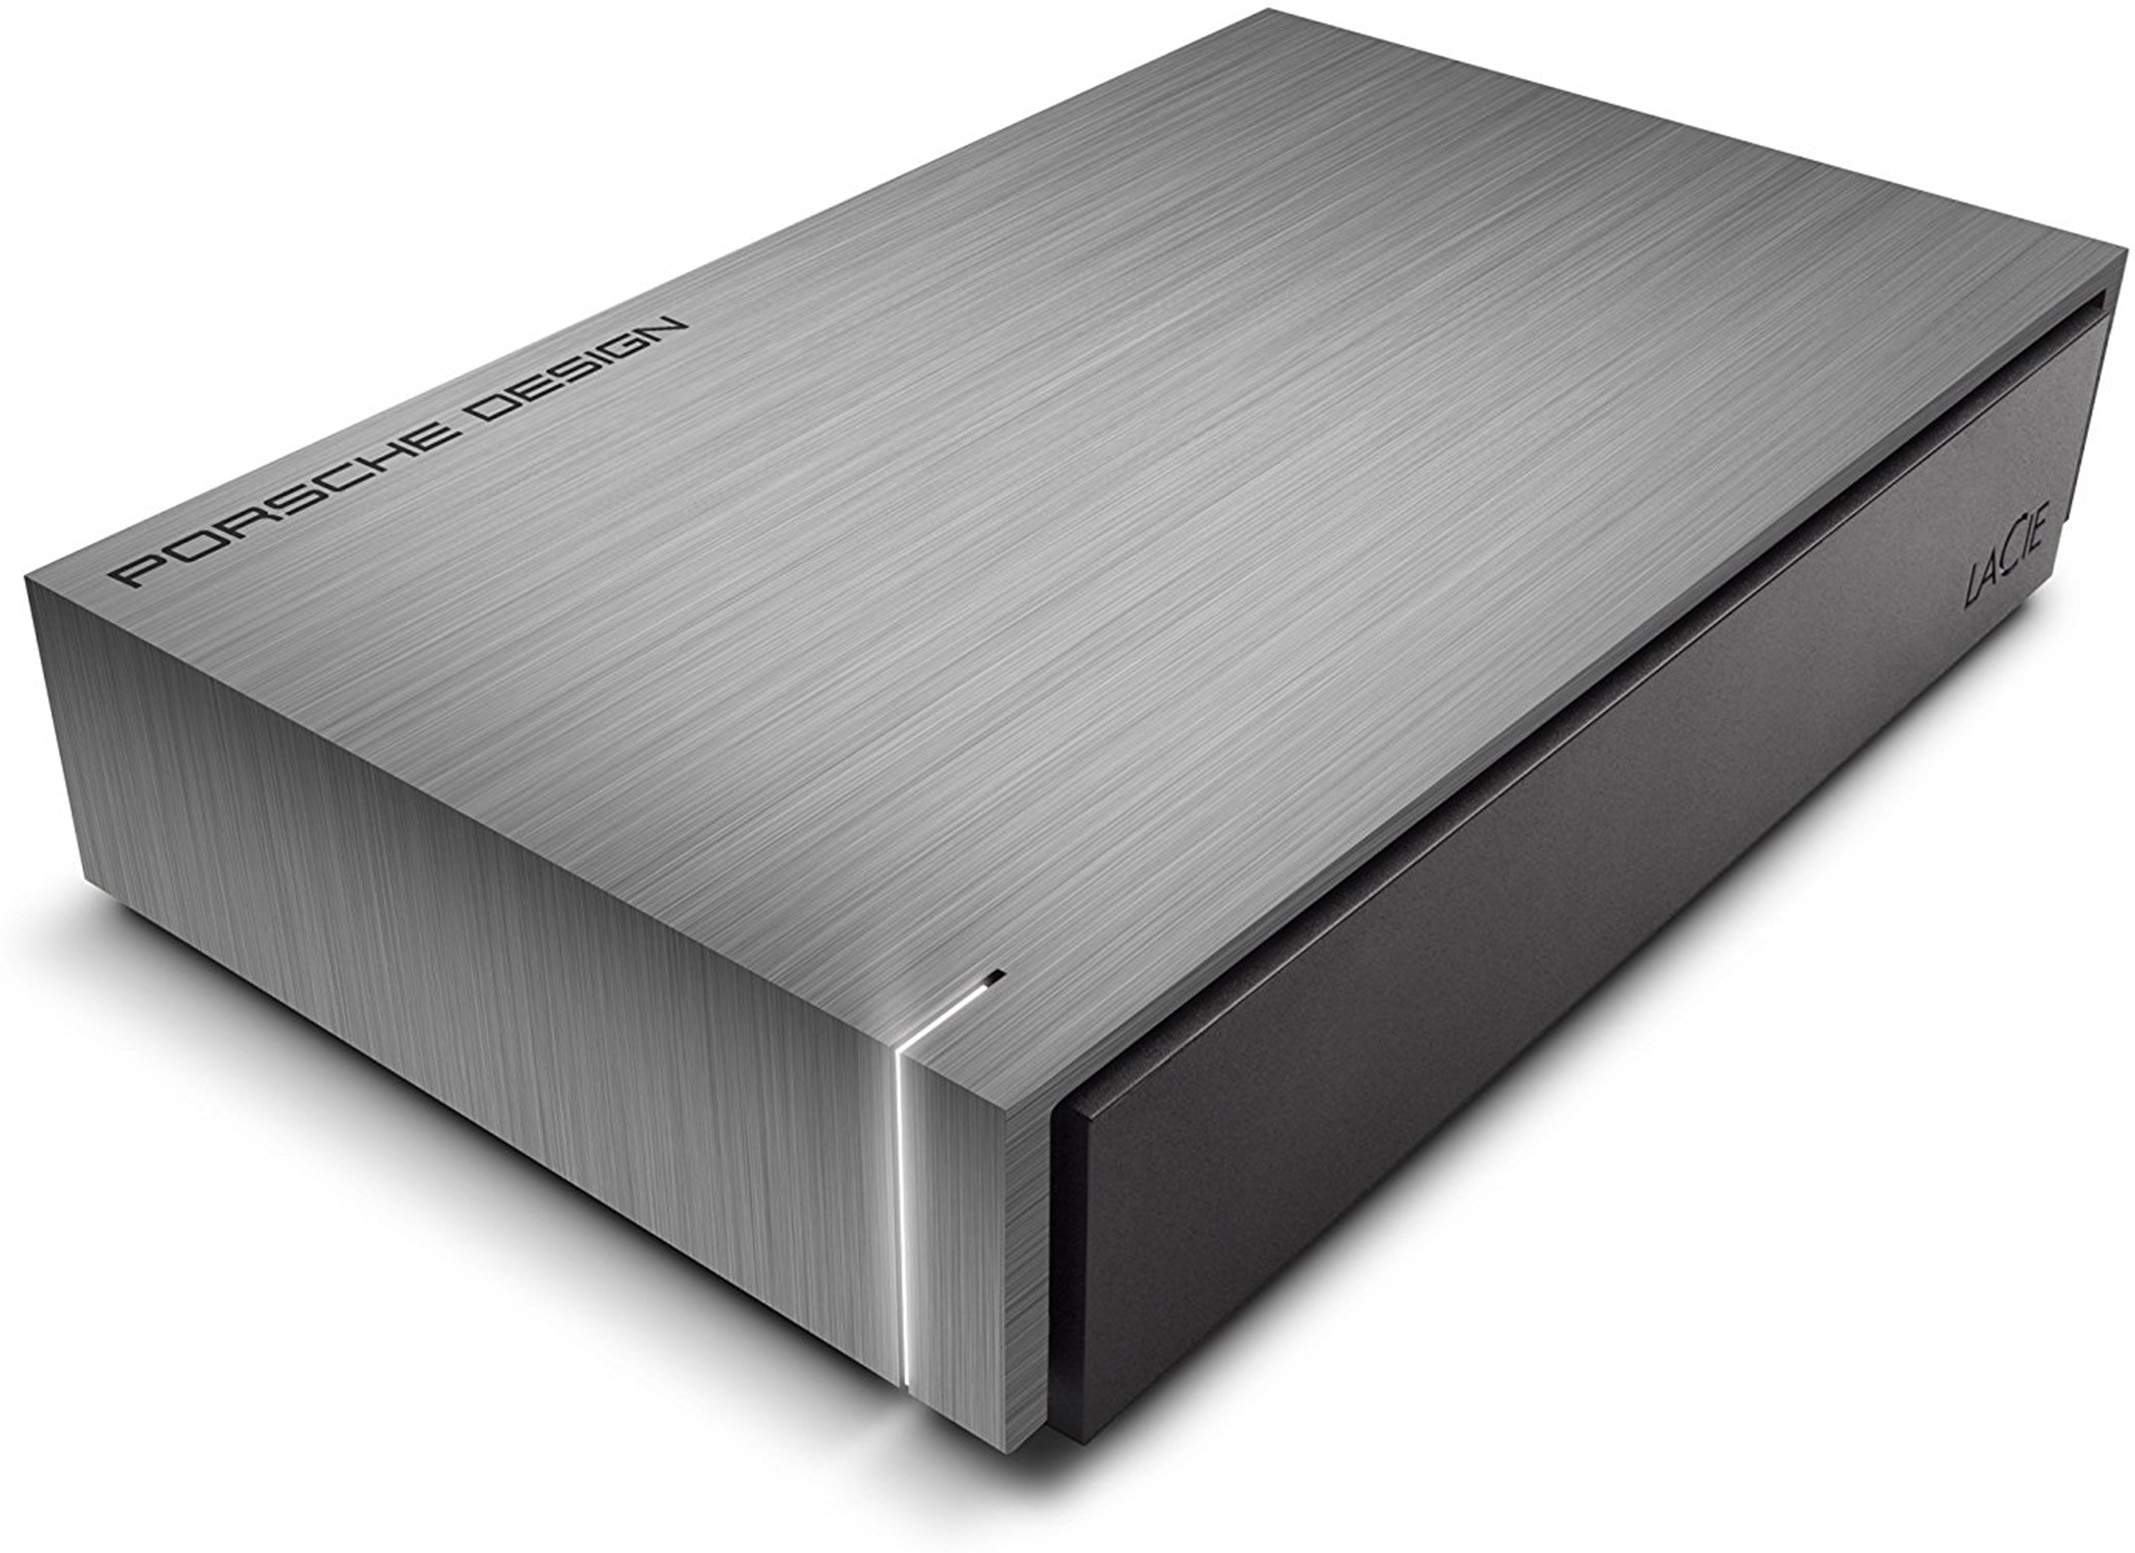 LaCie Porsche Design Desktop Hard Drive (4 To)